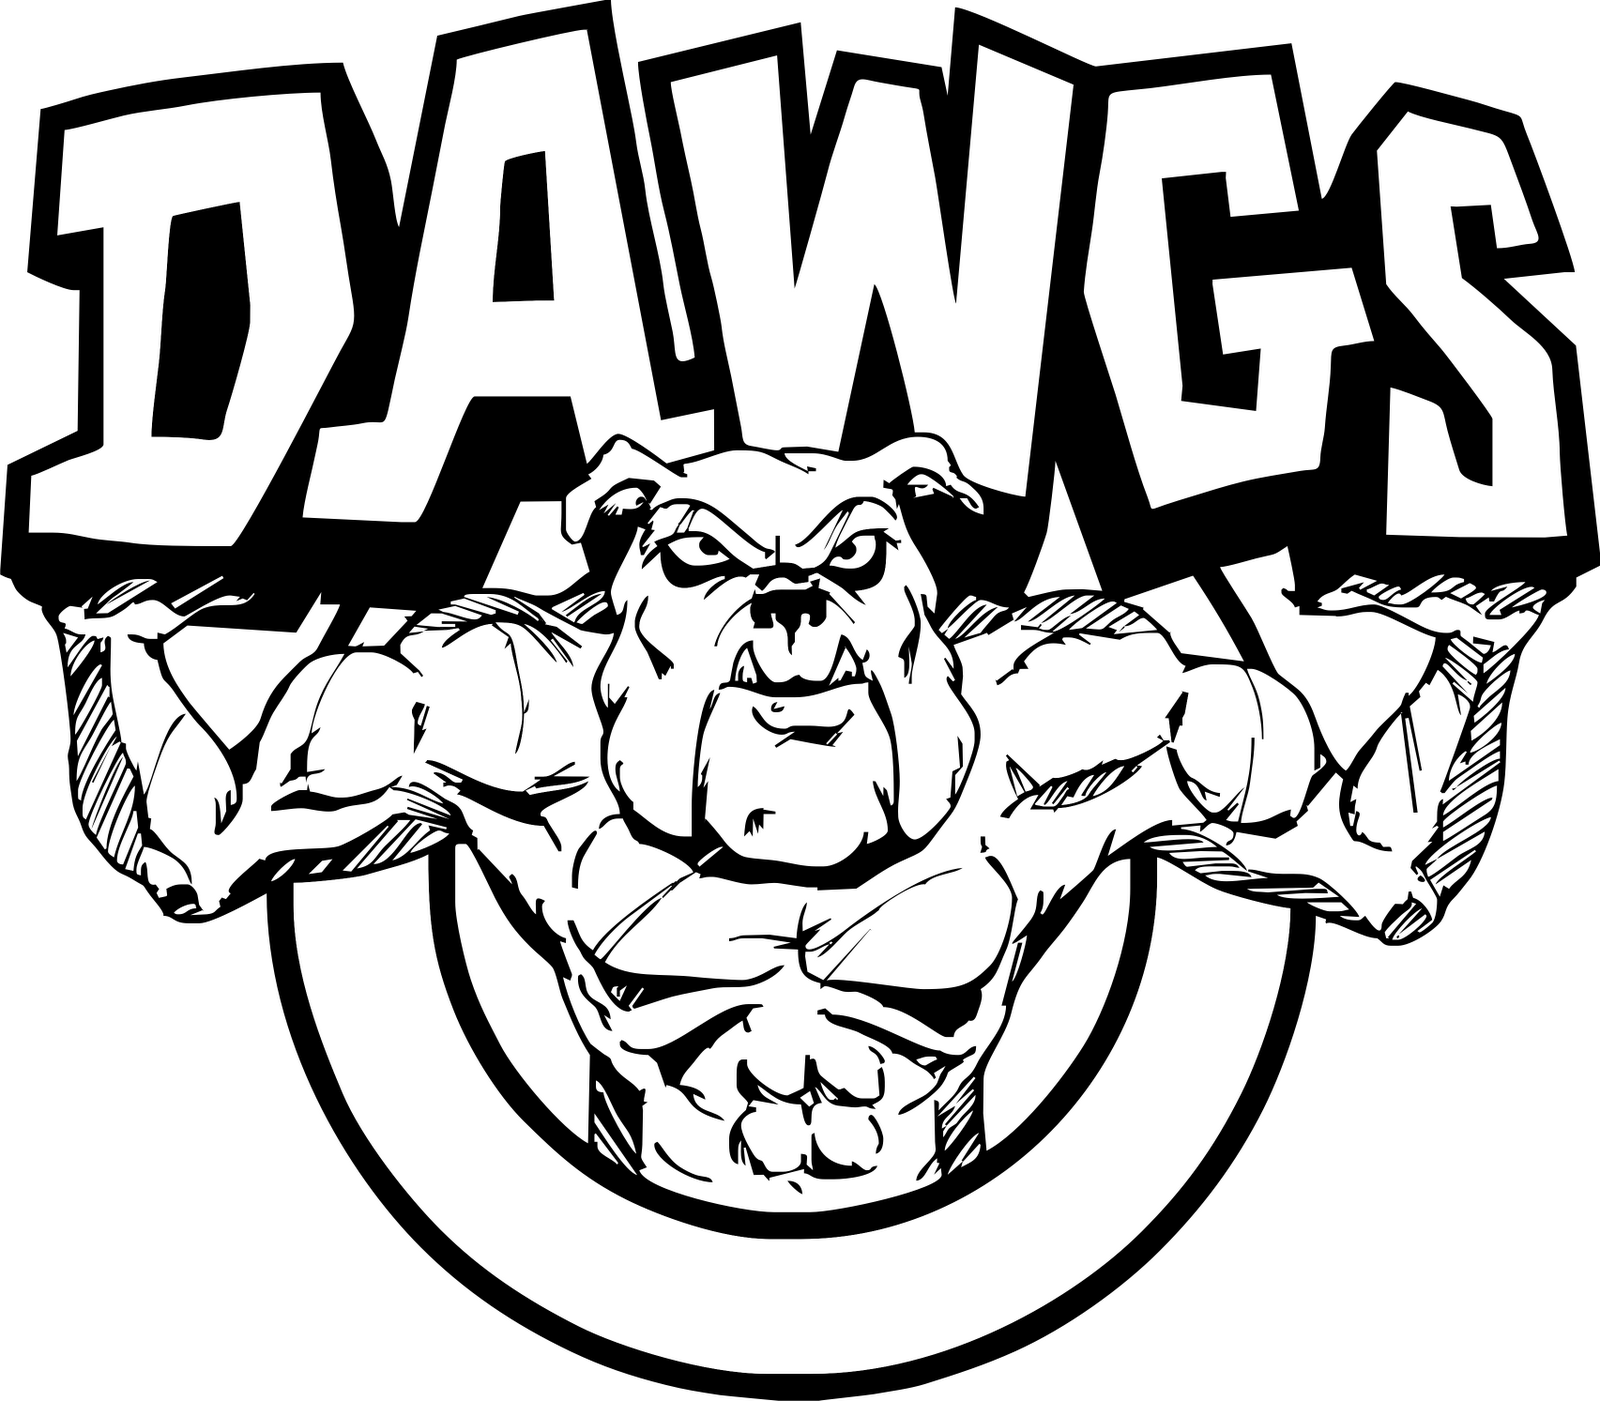 17 Best images about C-C DAWGS on Pinterest | Logos, Bulldog ... picture freeuse stock